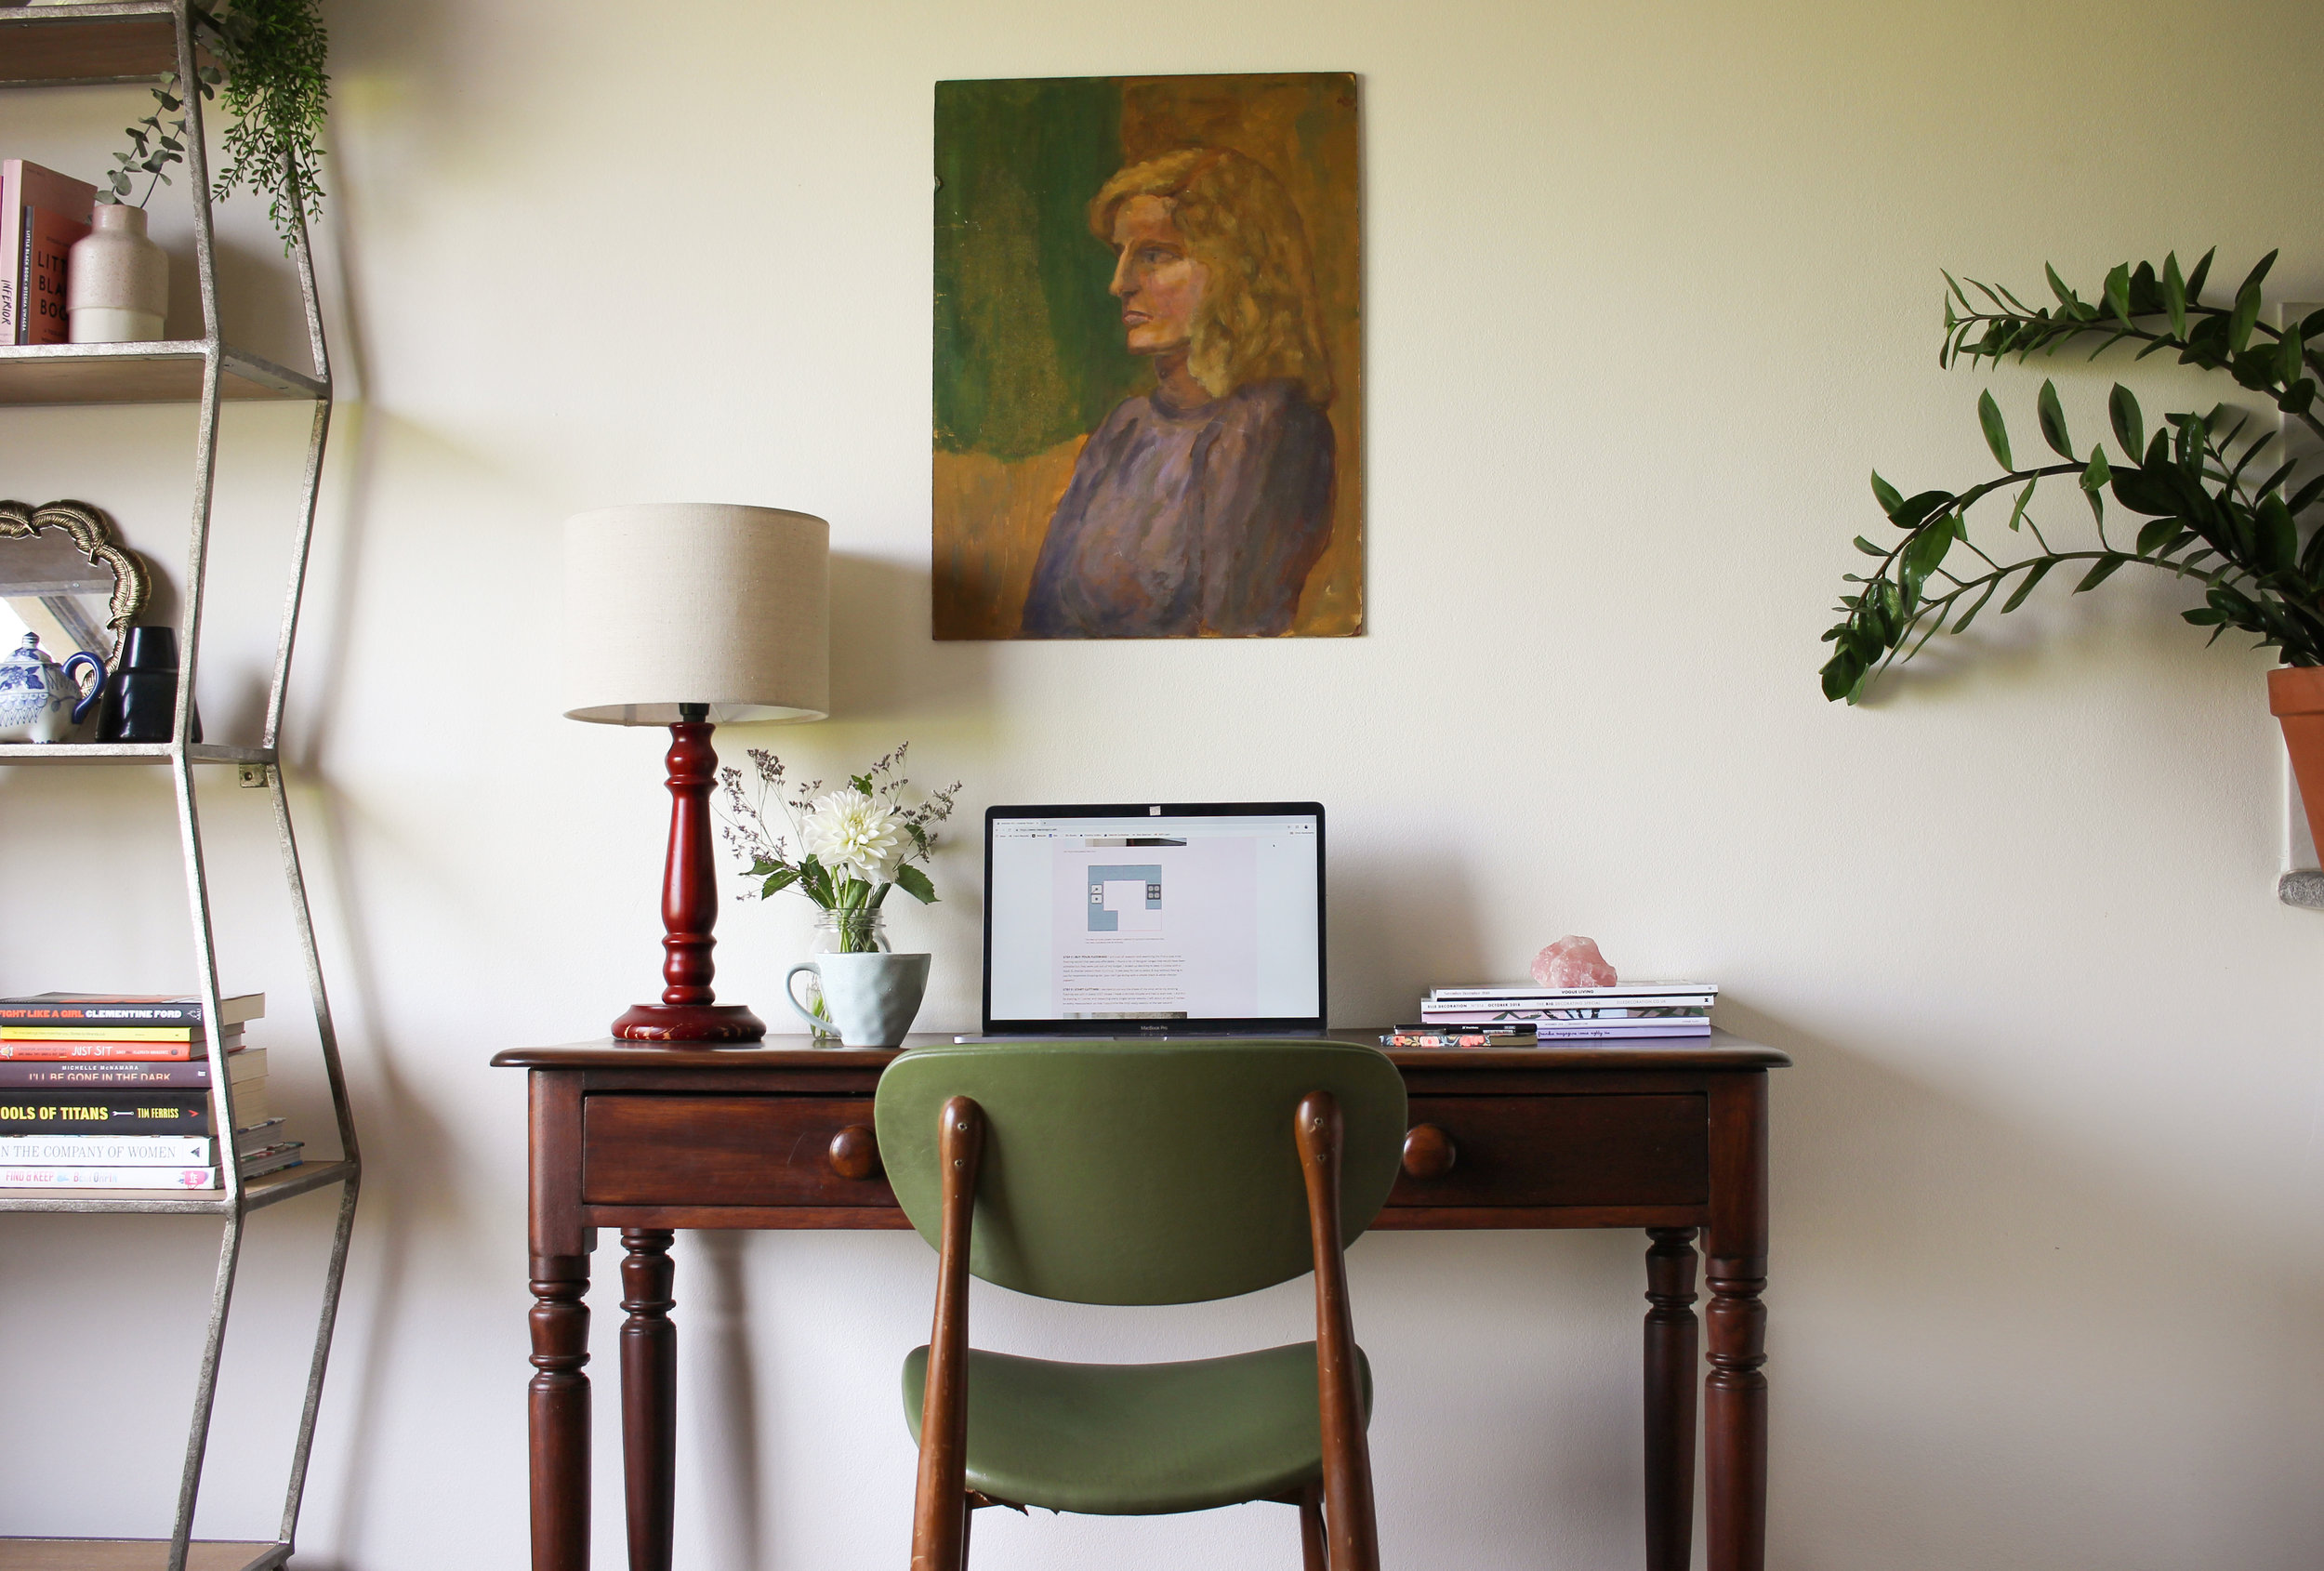 BEING STYLED WITH A LAMP, STACK OF MAGAZINES AND A CHAIR MAKES IT CLEAR THAT THIS IS A STUDY NOOK.